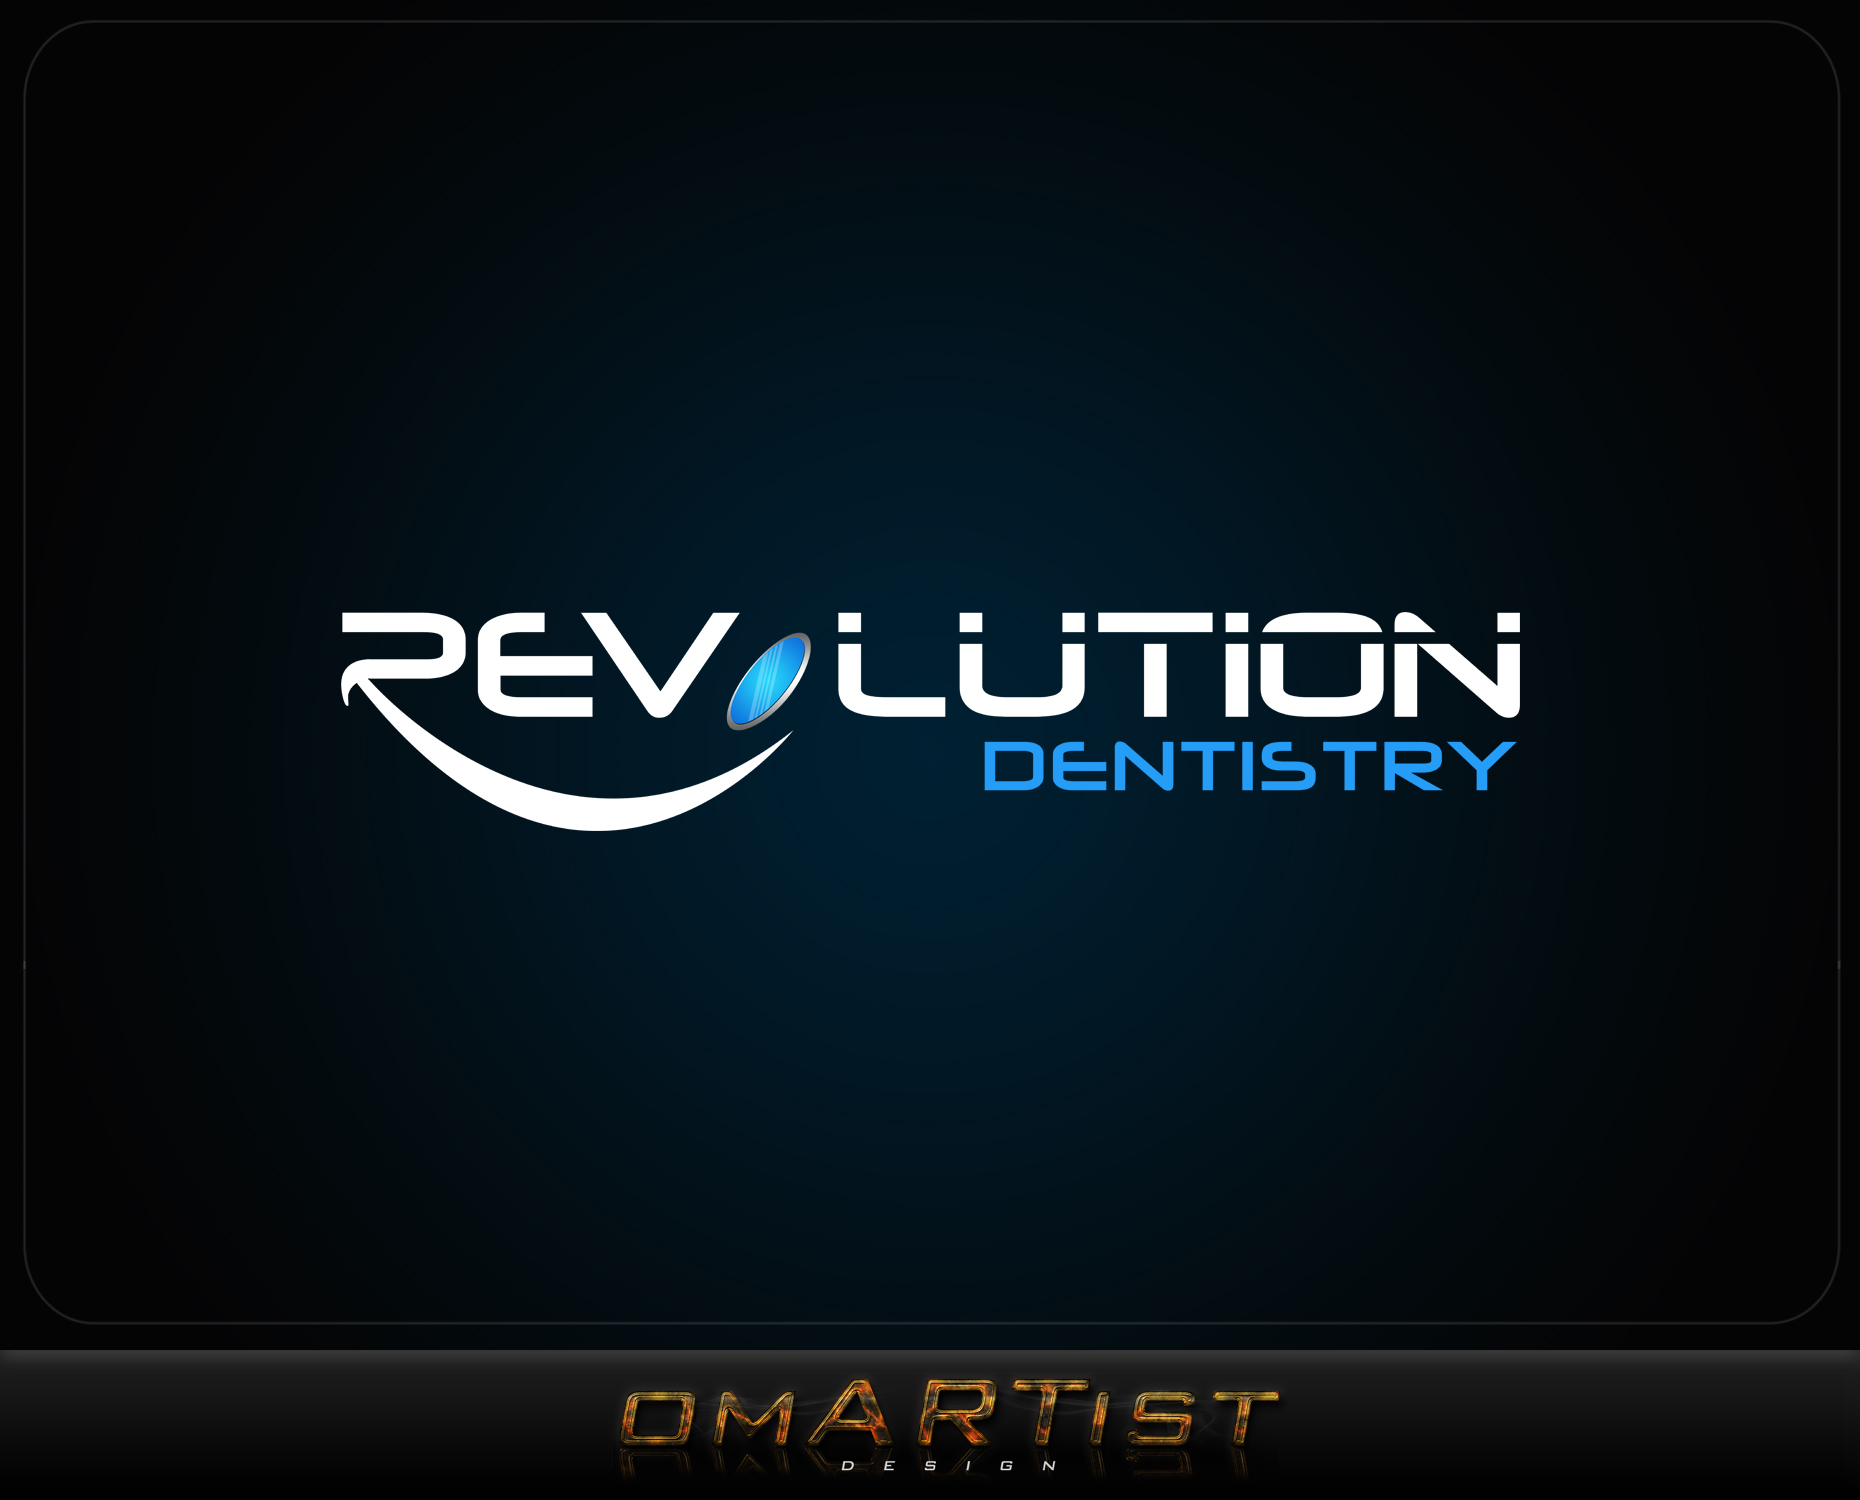 Logo Design by omARTist - Entry No. 239 in the Logo Design Contest Artistic Logo Design for Revolution Dentistry.